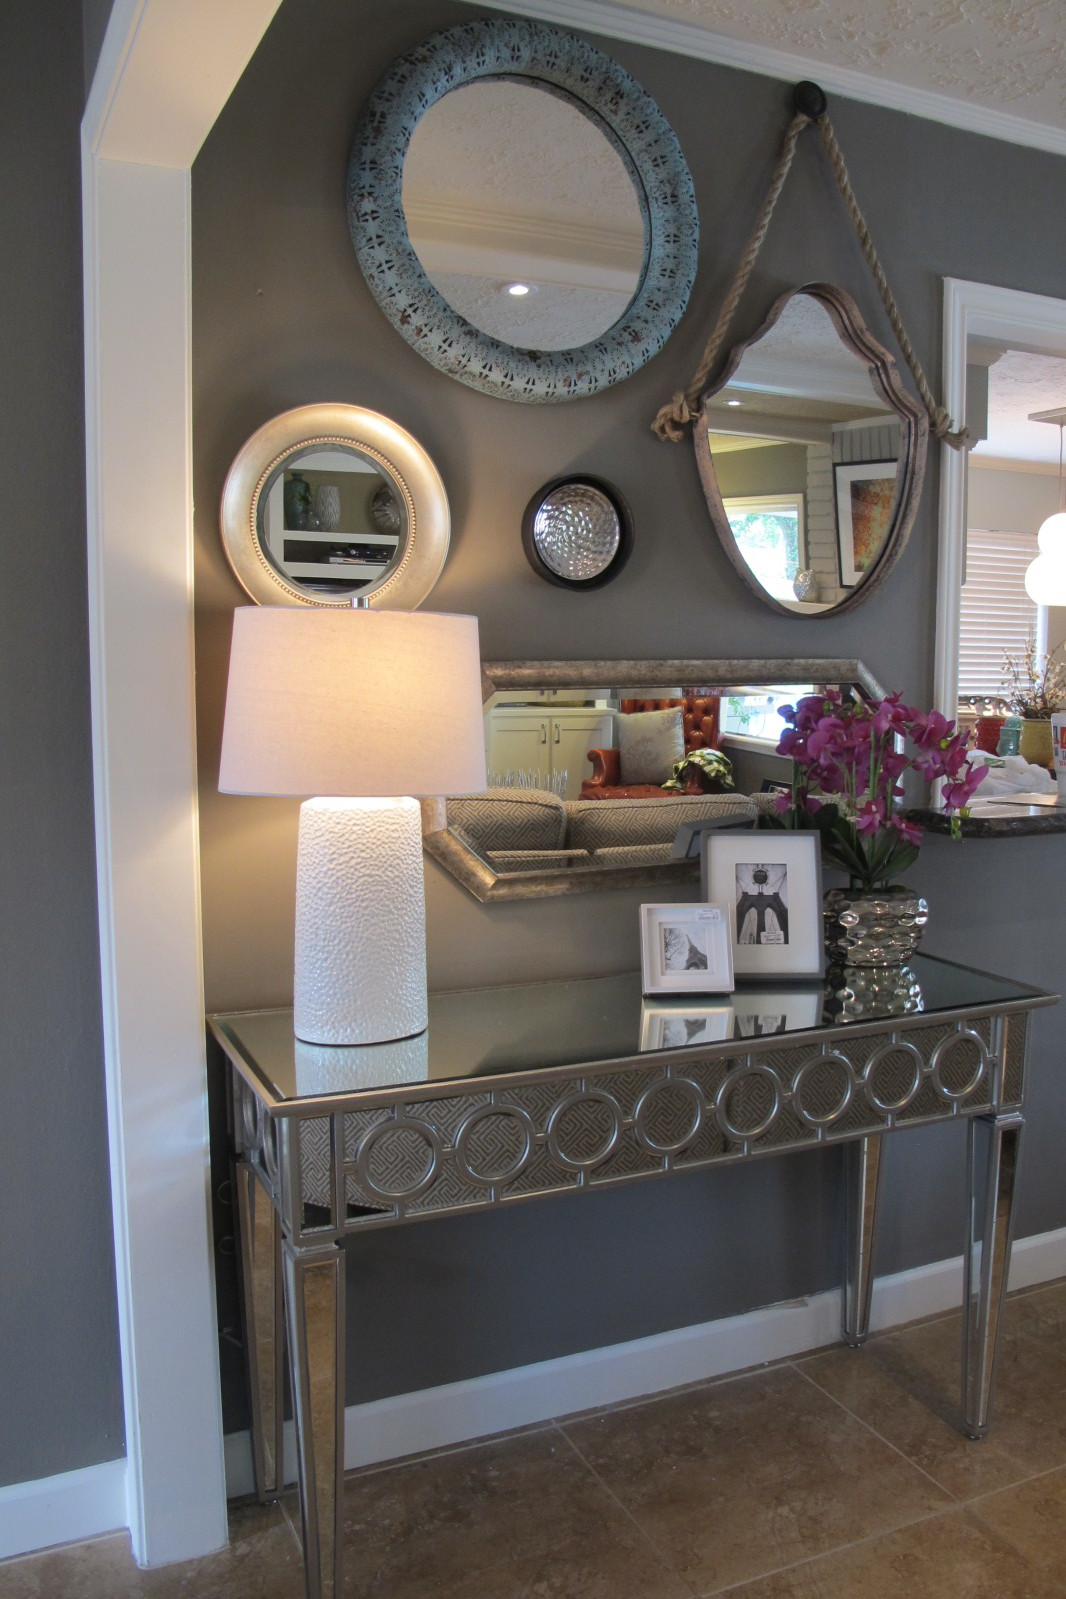 Christie Chase: #368...mirror grouping